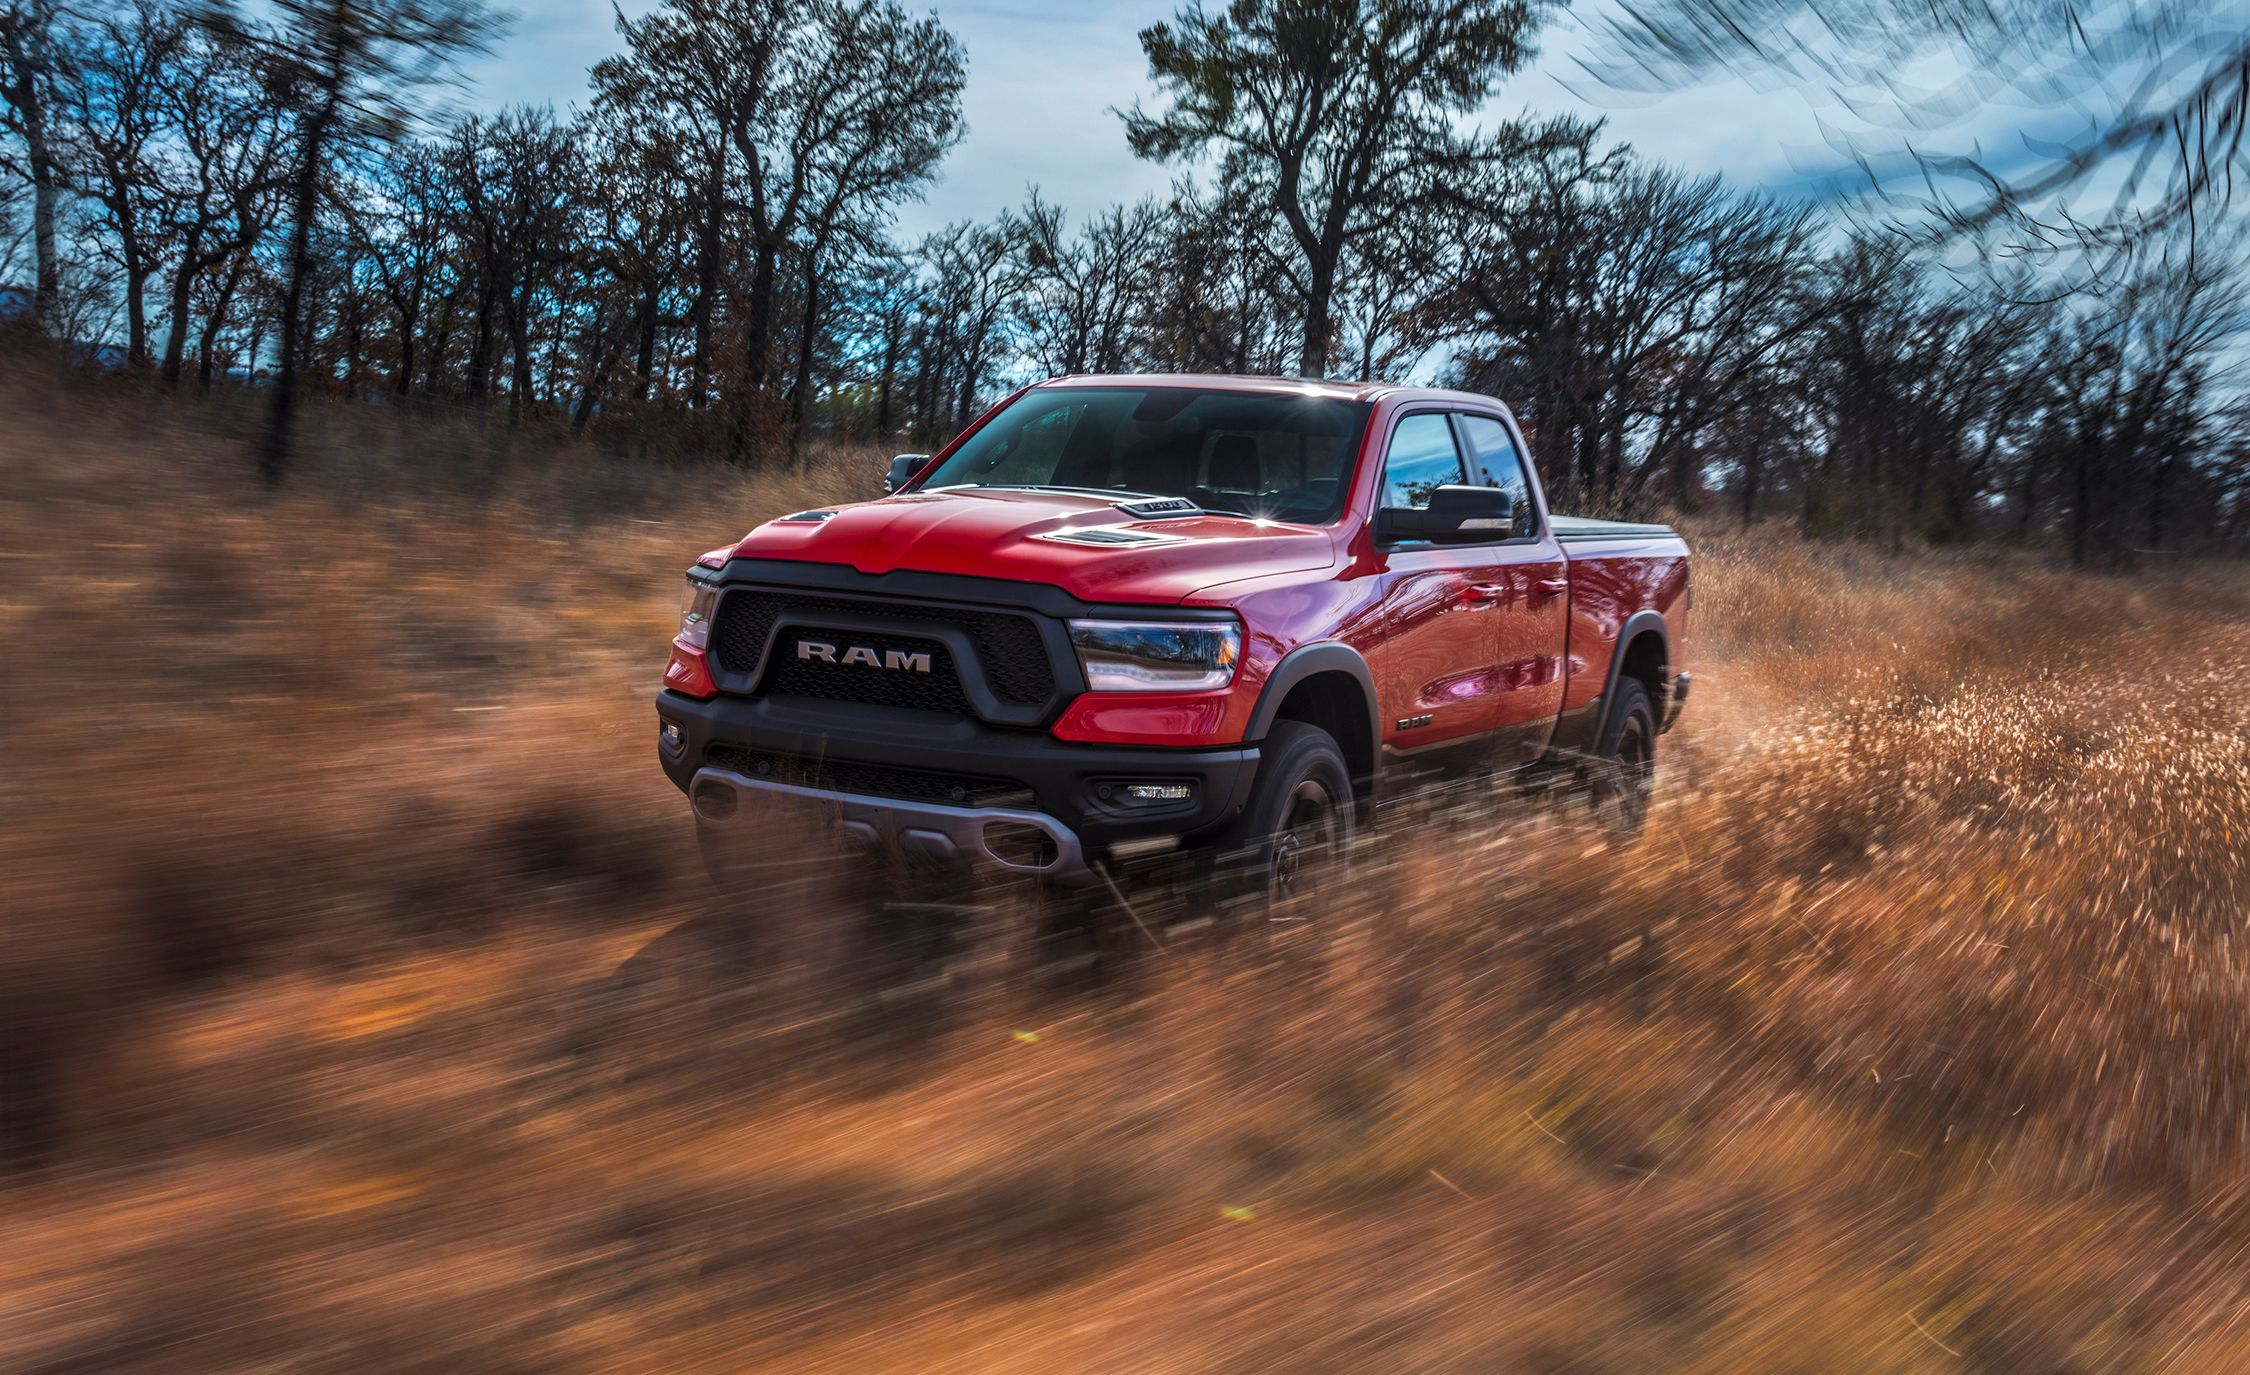 My Ford Benefits >> 2019 Ram 1500 Rebel First Drive | Review | Car and Driver